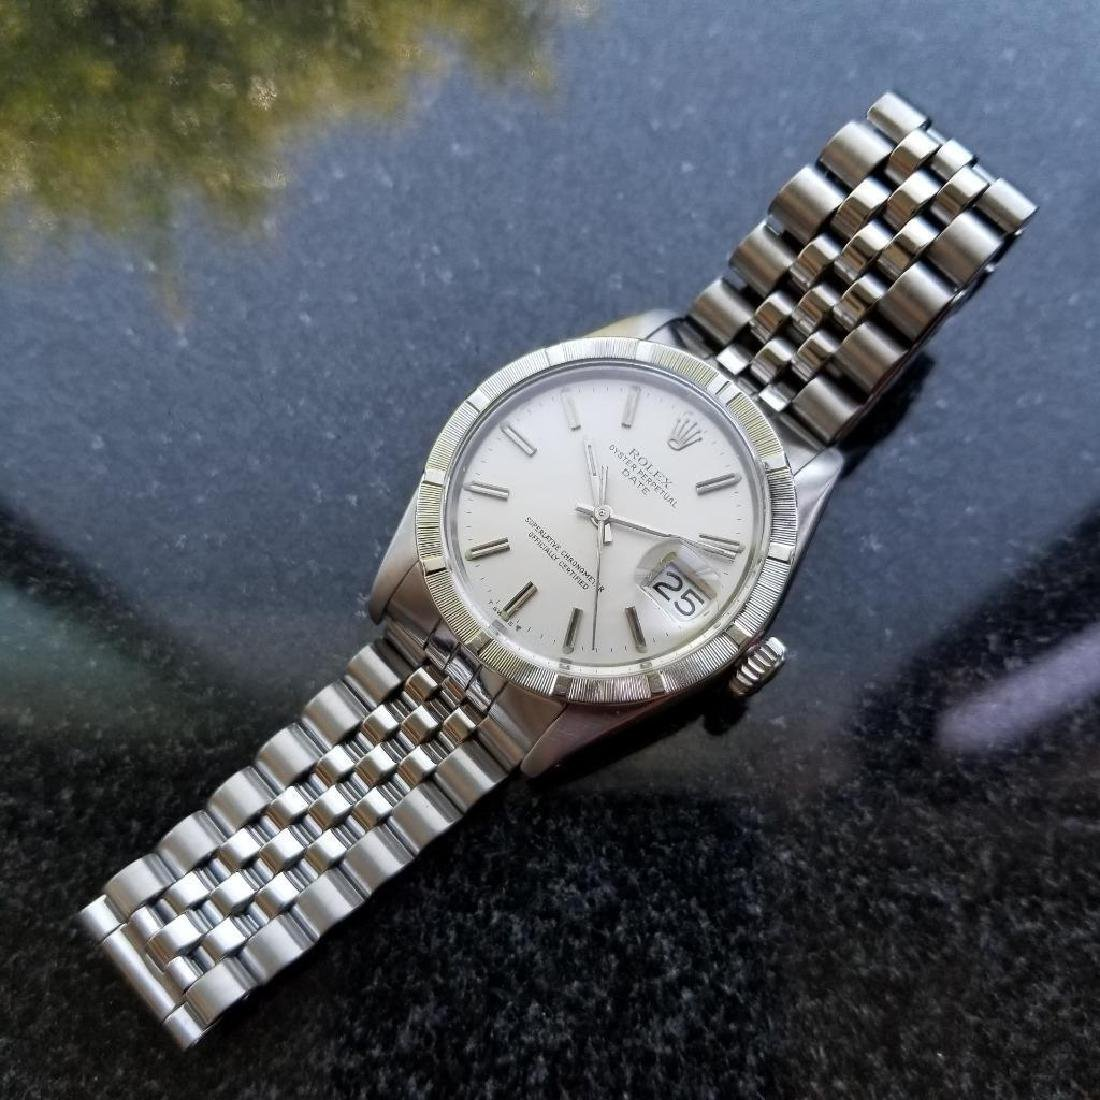 Rolex Oyster Perpetual 1501 Date Vintage 1977 Auto 35mm - 5